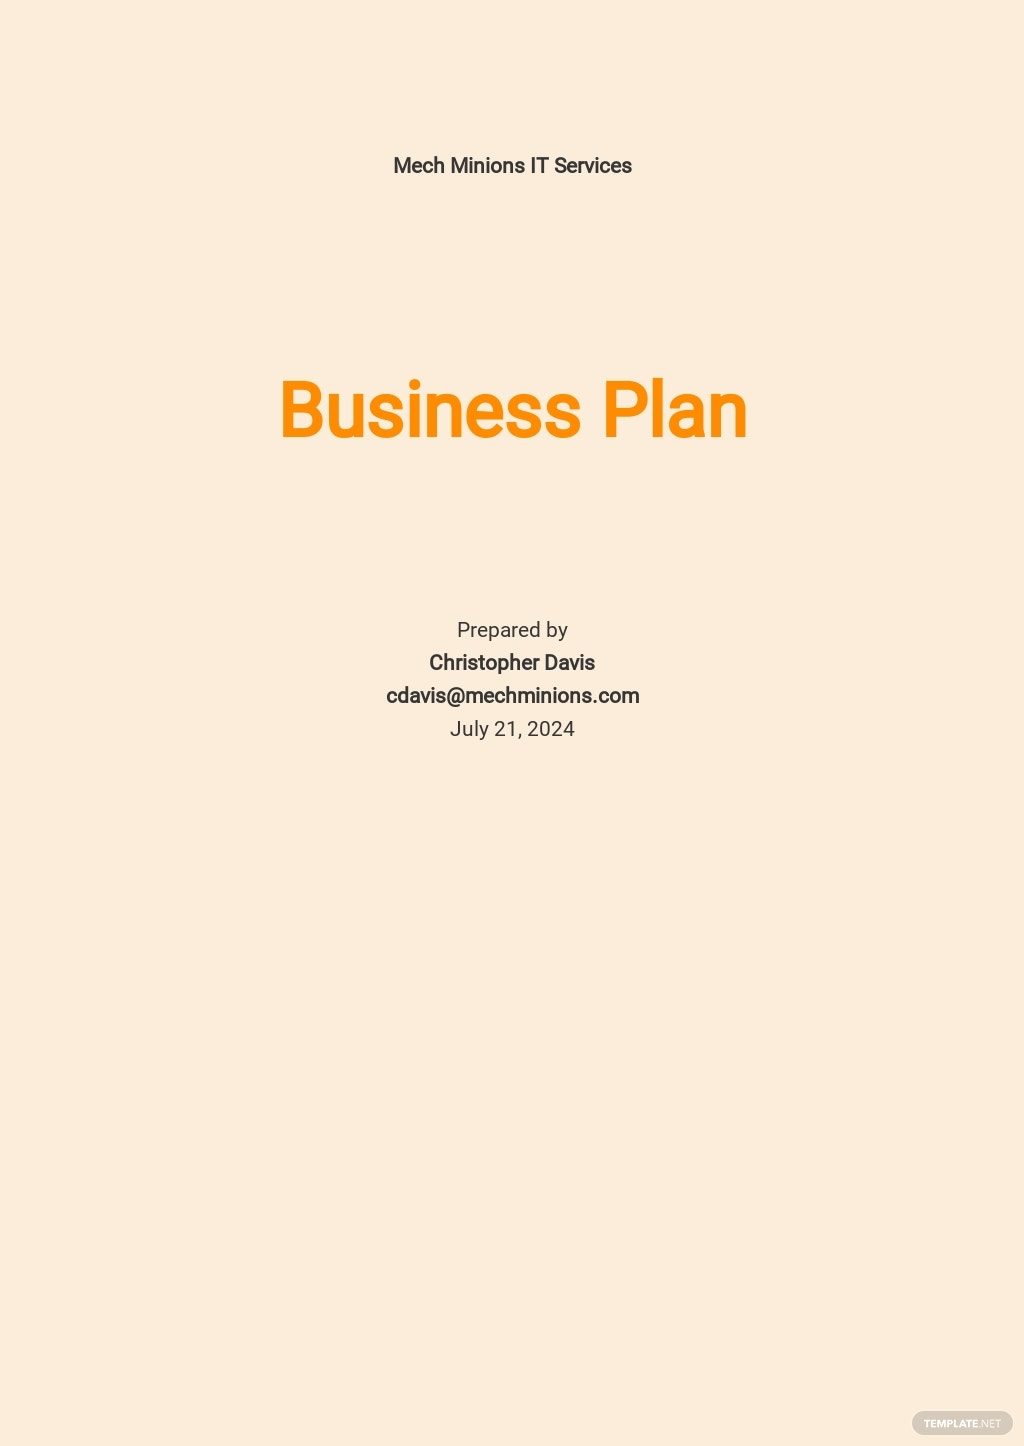 Basic IT Business Plan Template